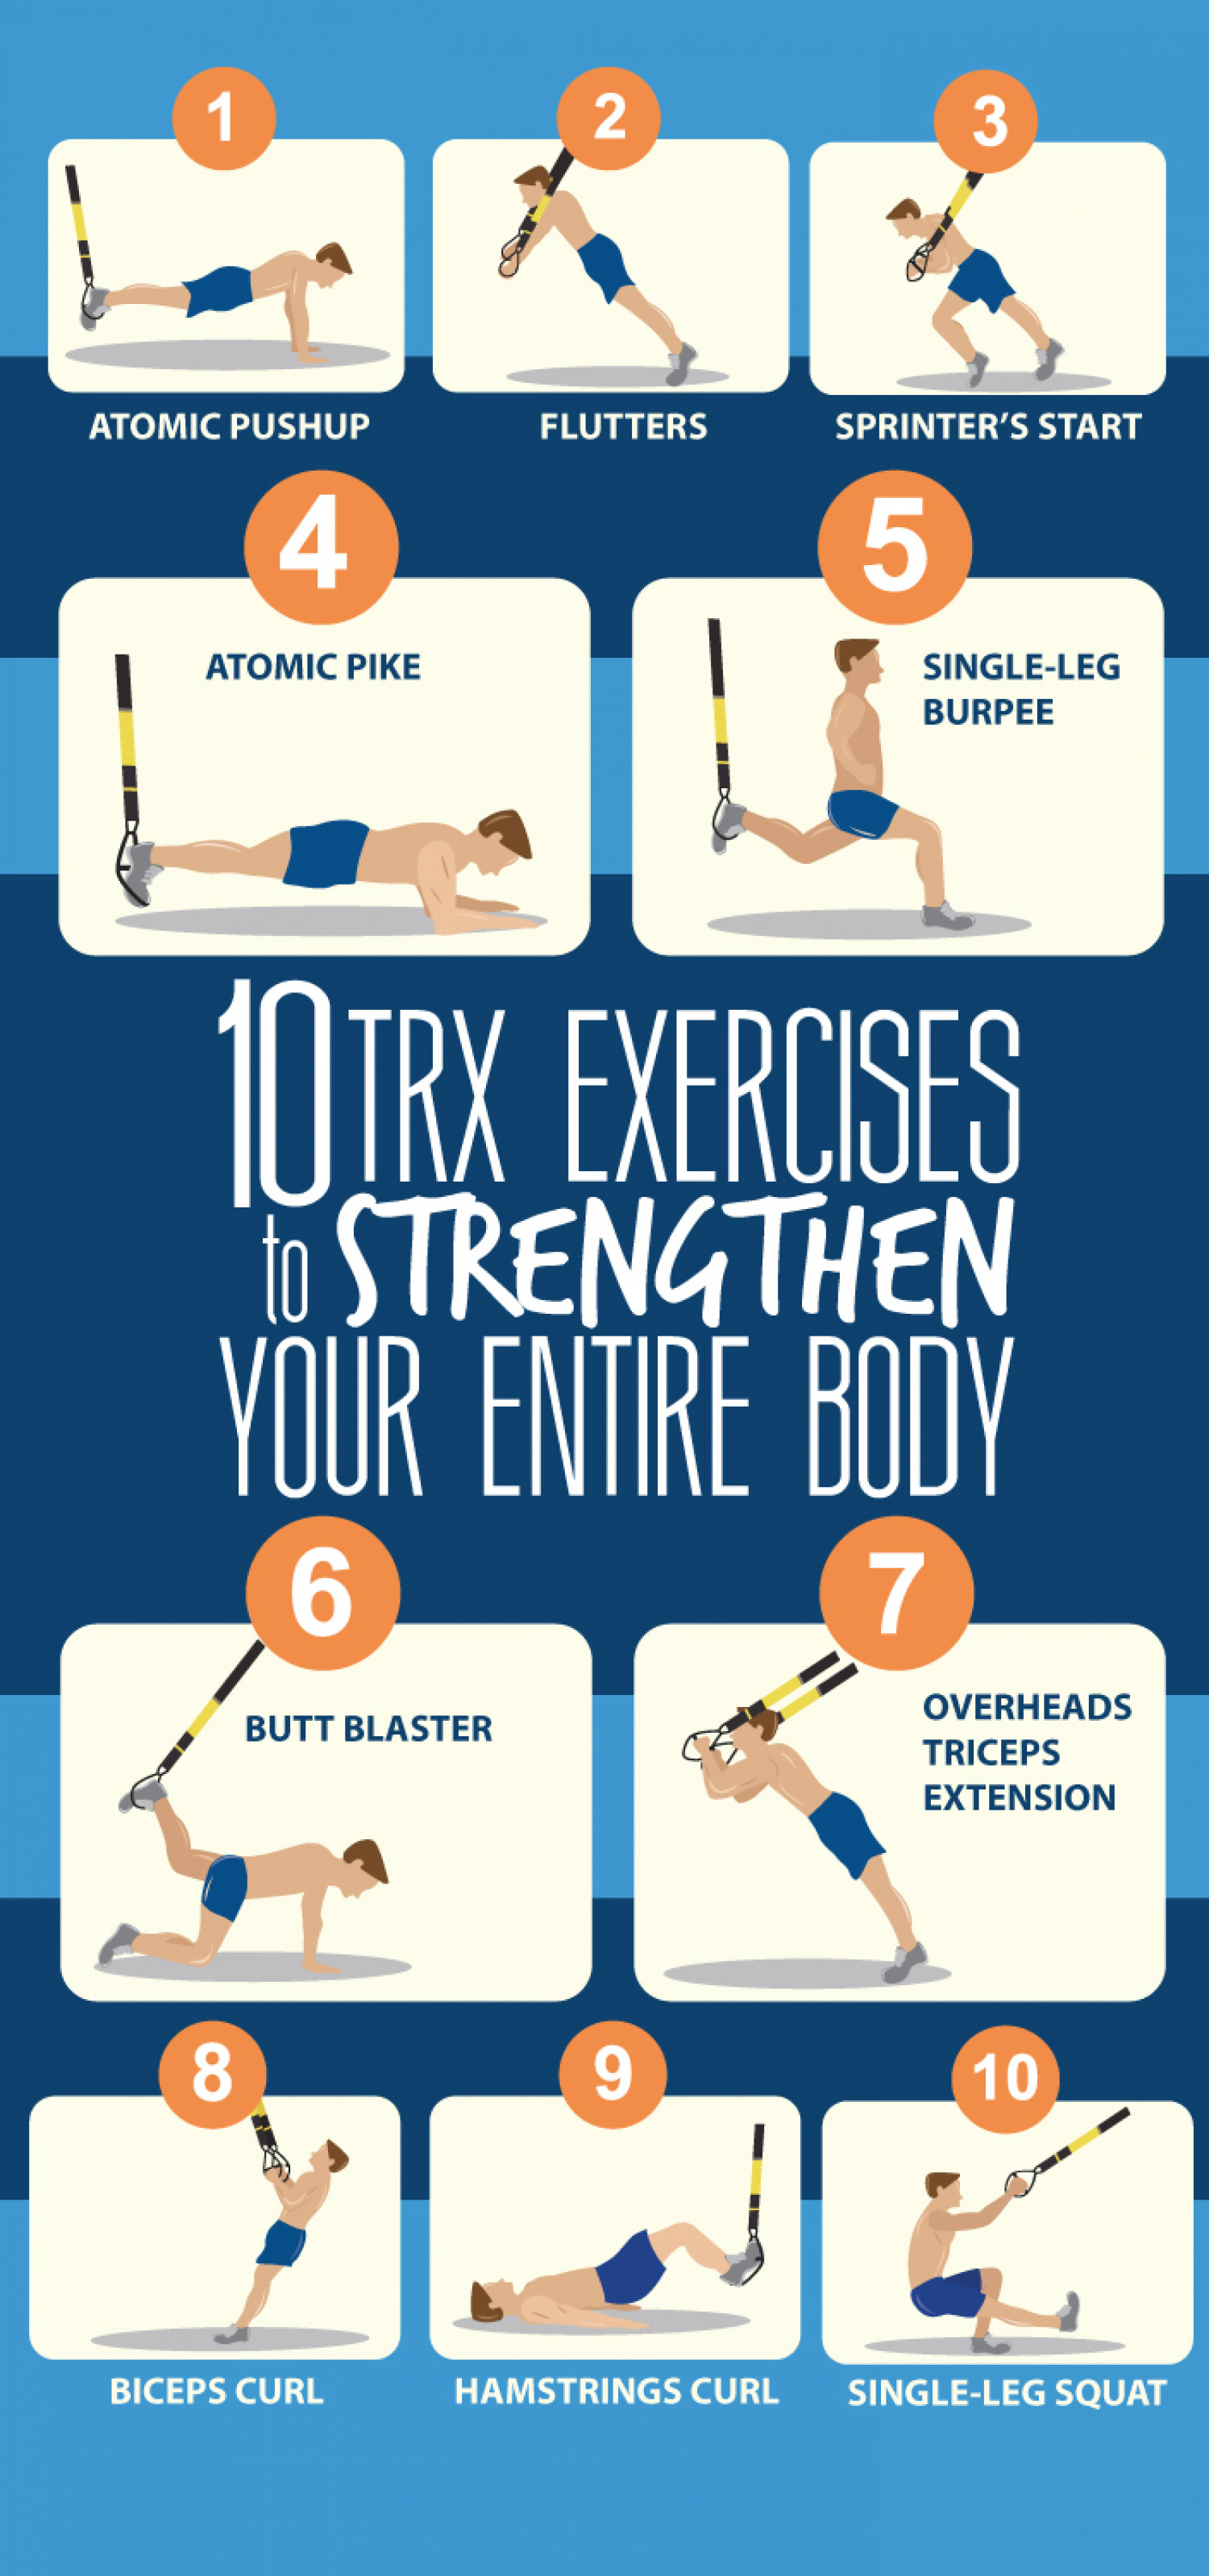 10 TRX Exercises to Strengthen Your Entire Body Infographic